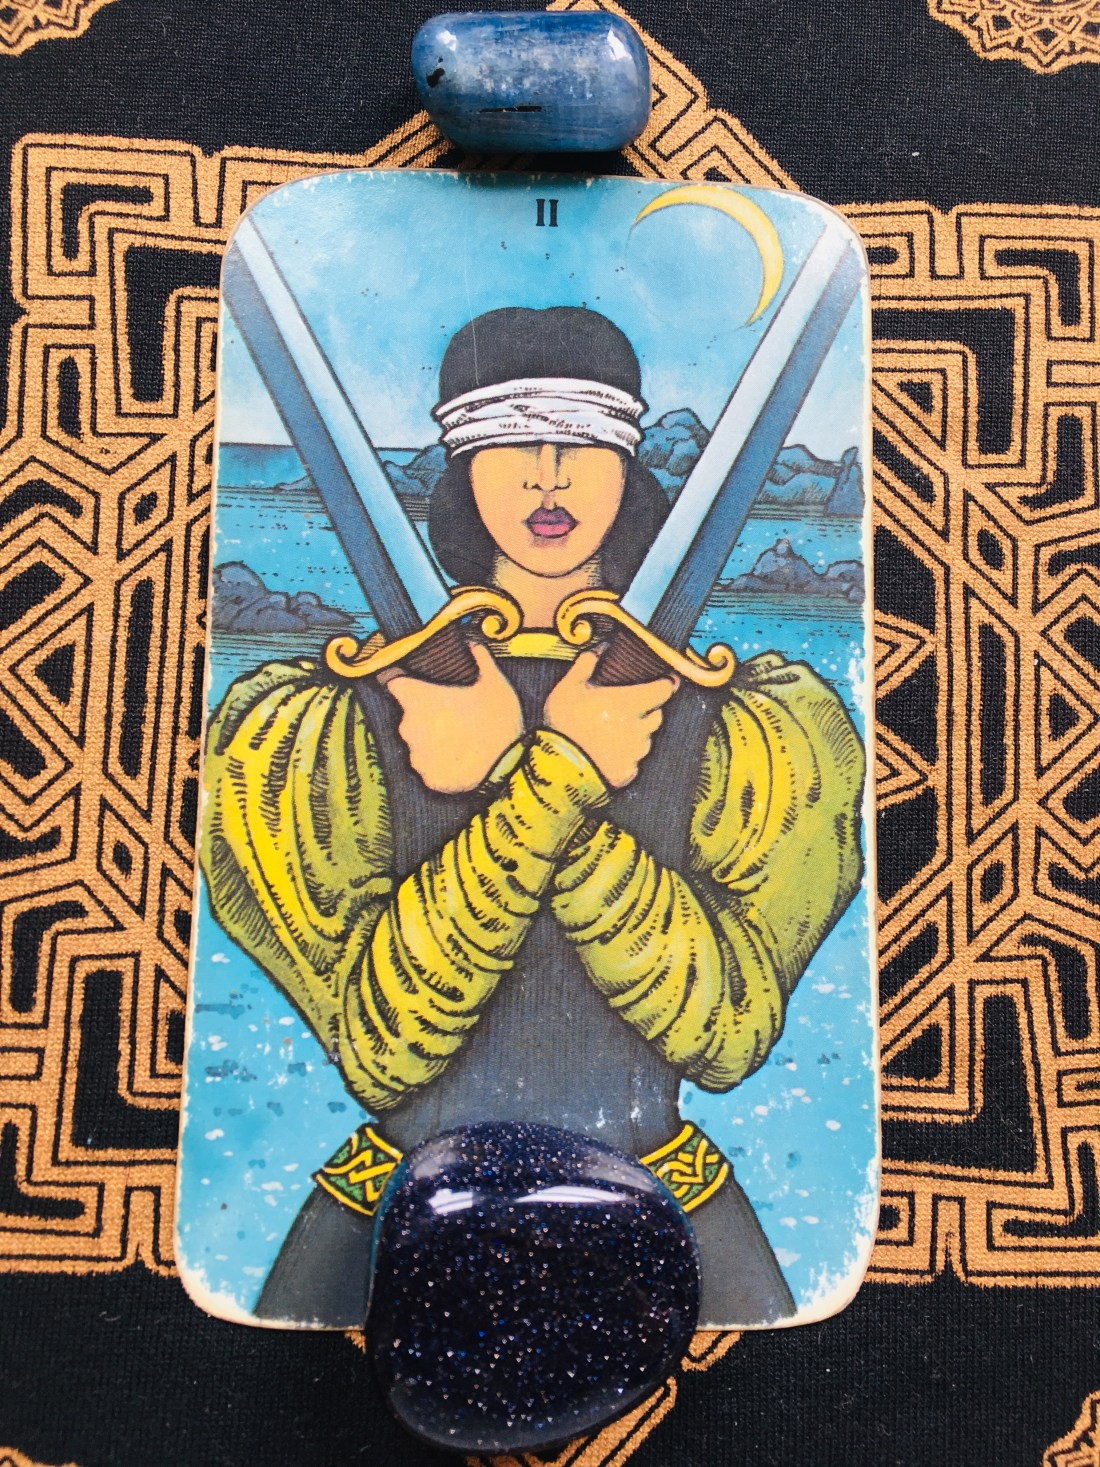 two of swords, intuitive insight